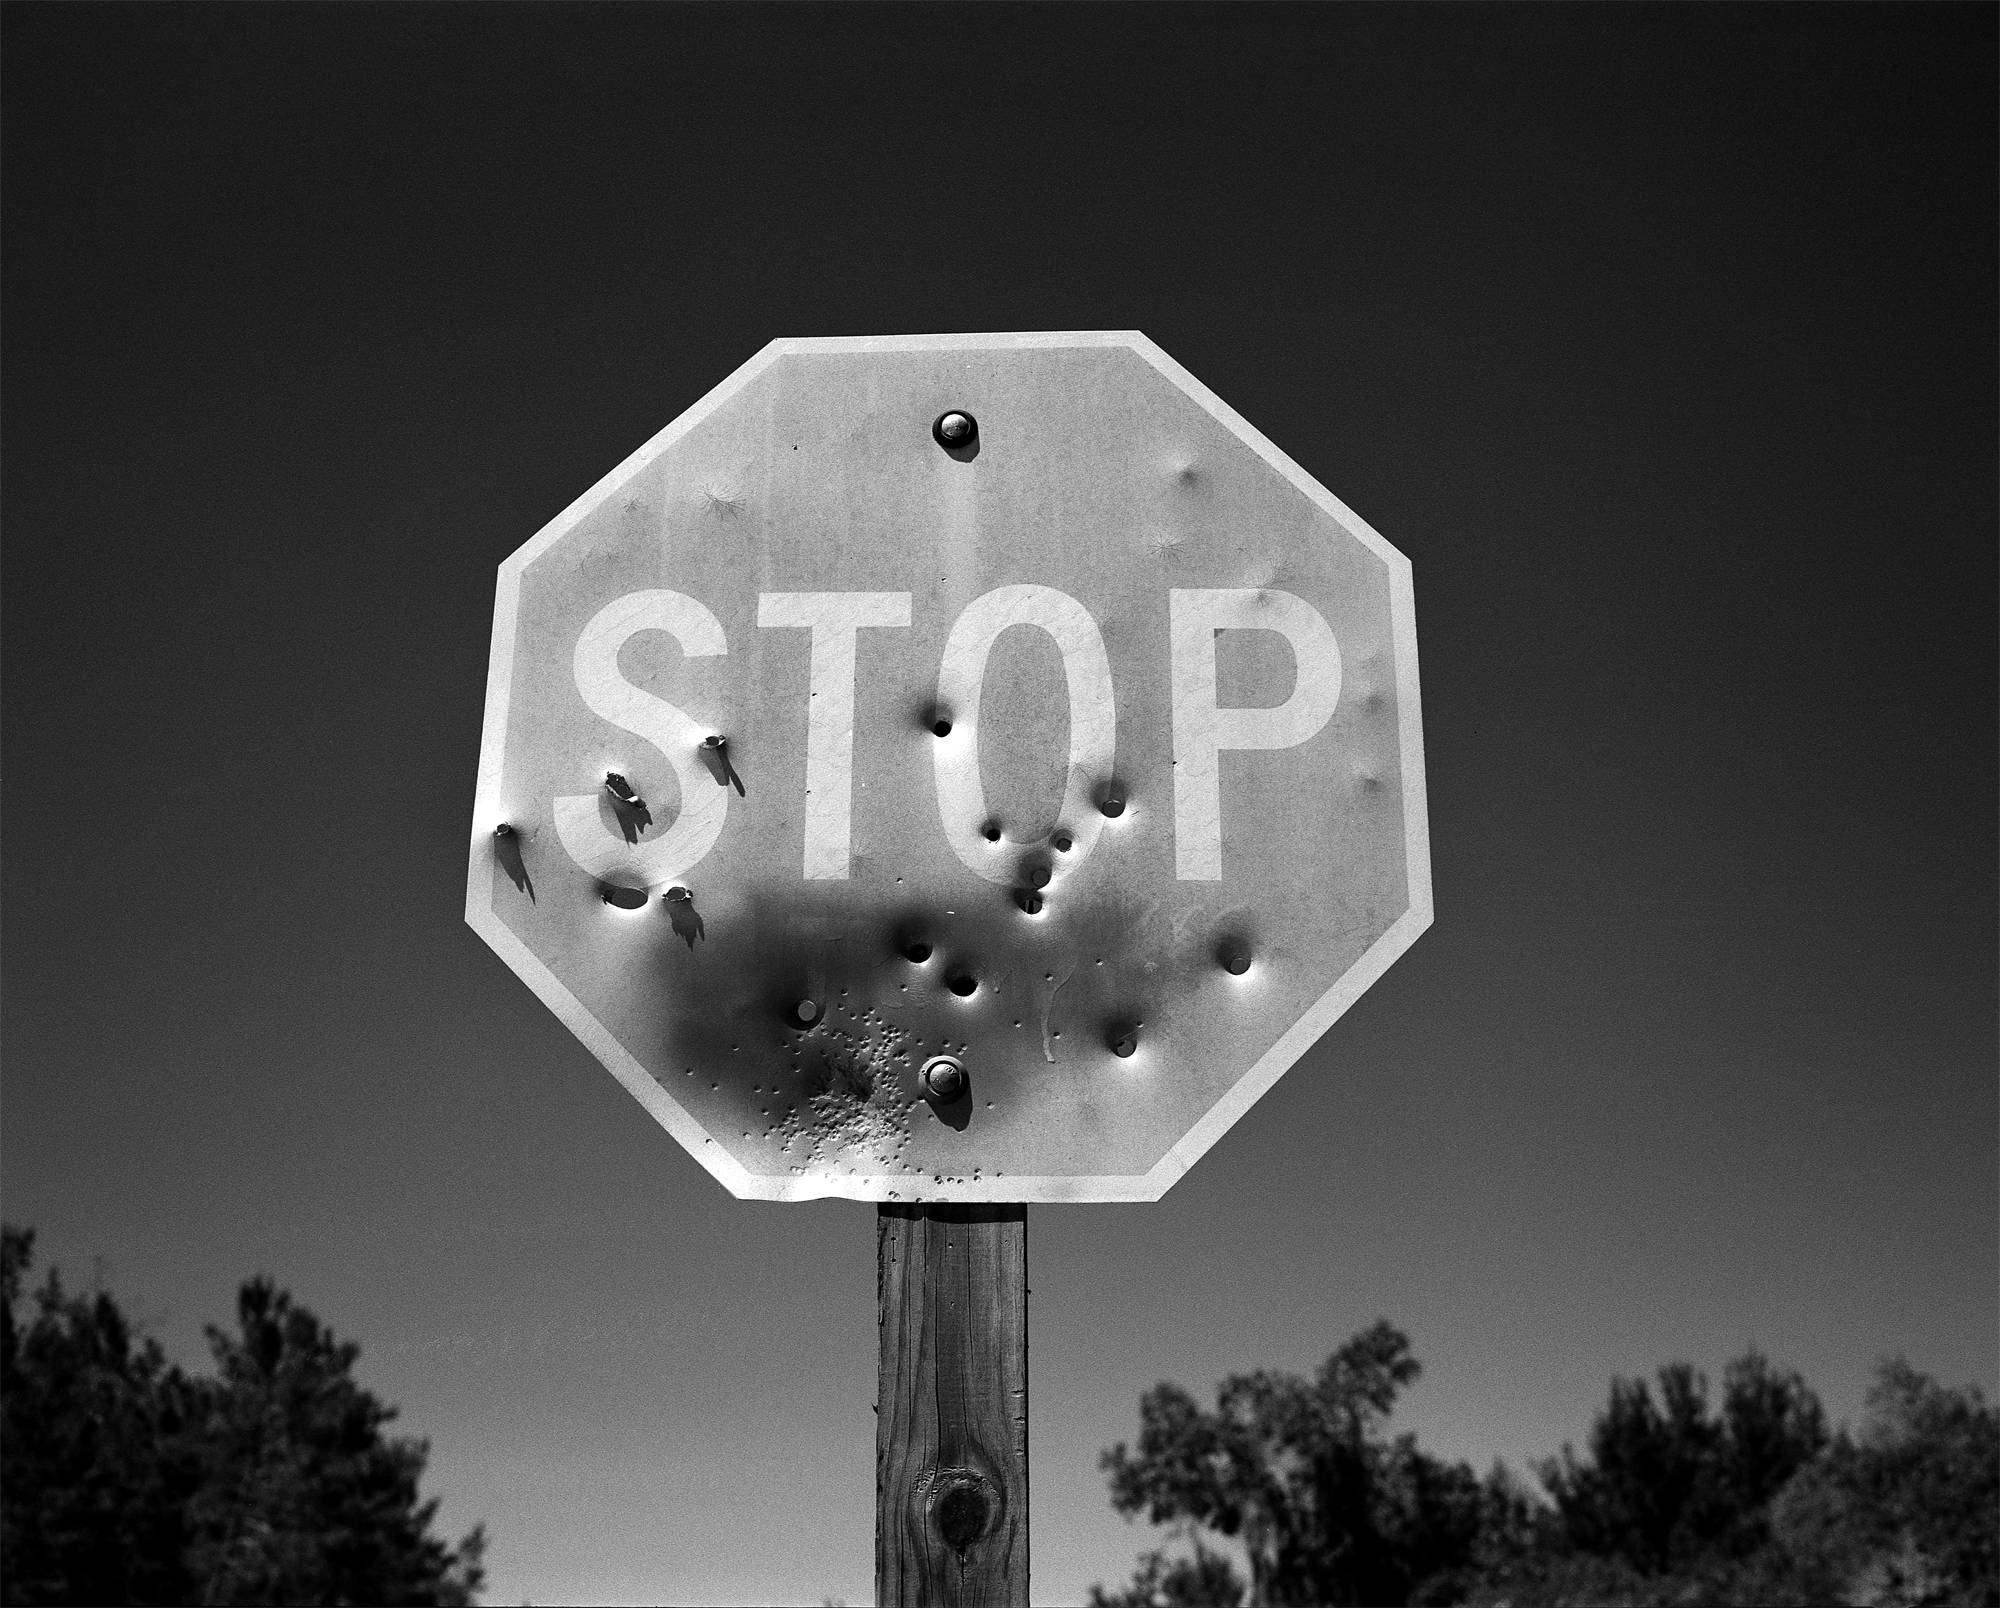 Shot up stop sign on the outskirts of the Juniper Prairie Wilderness. Shot details: Mamiya 7ii, 80mm f/4, #25 red filter, Kodak Tri-X 400 pushed to 1600